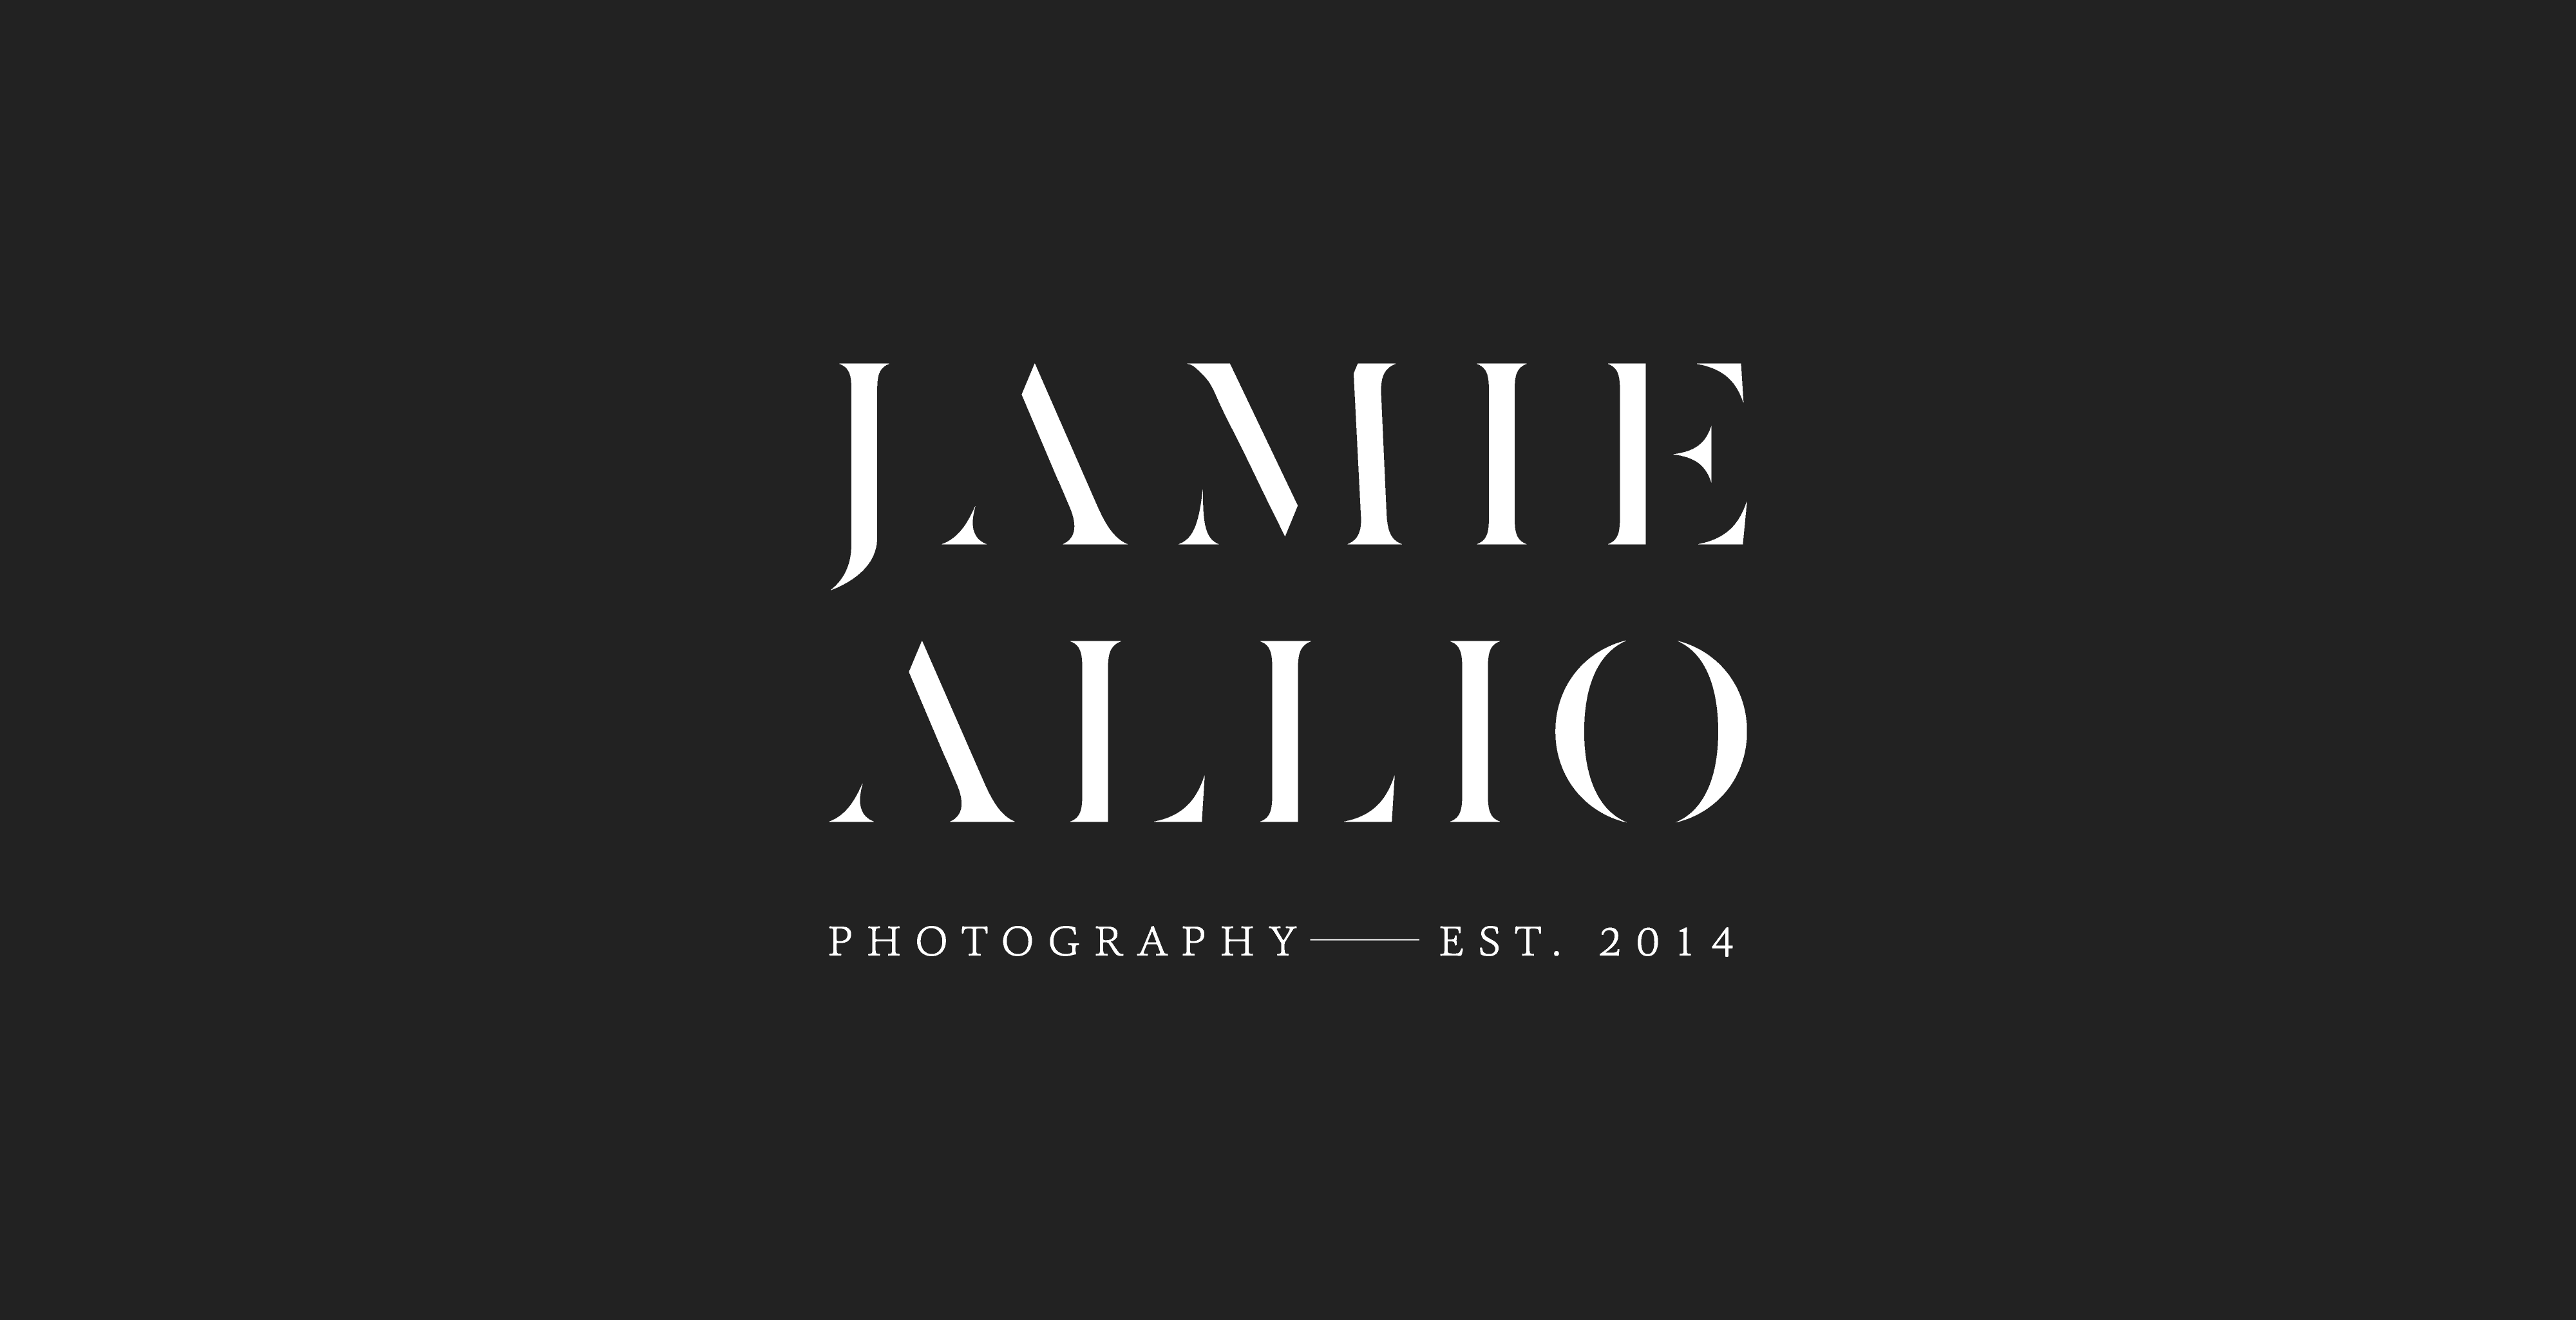 Brand Identity Design for Photographer Jamie Allio by Amarie Design Co.